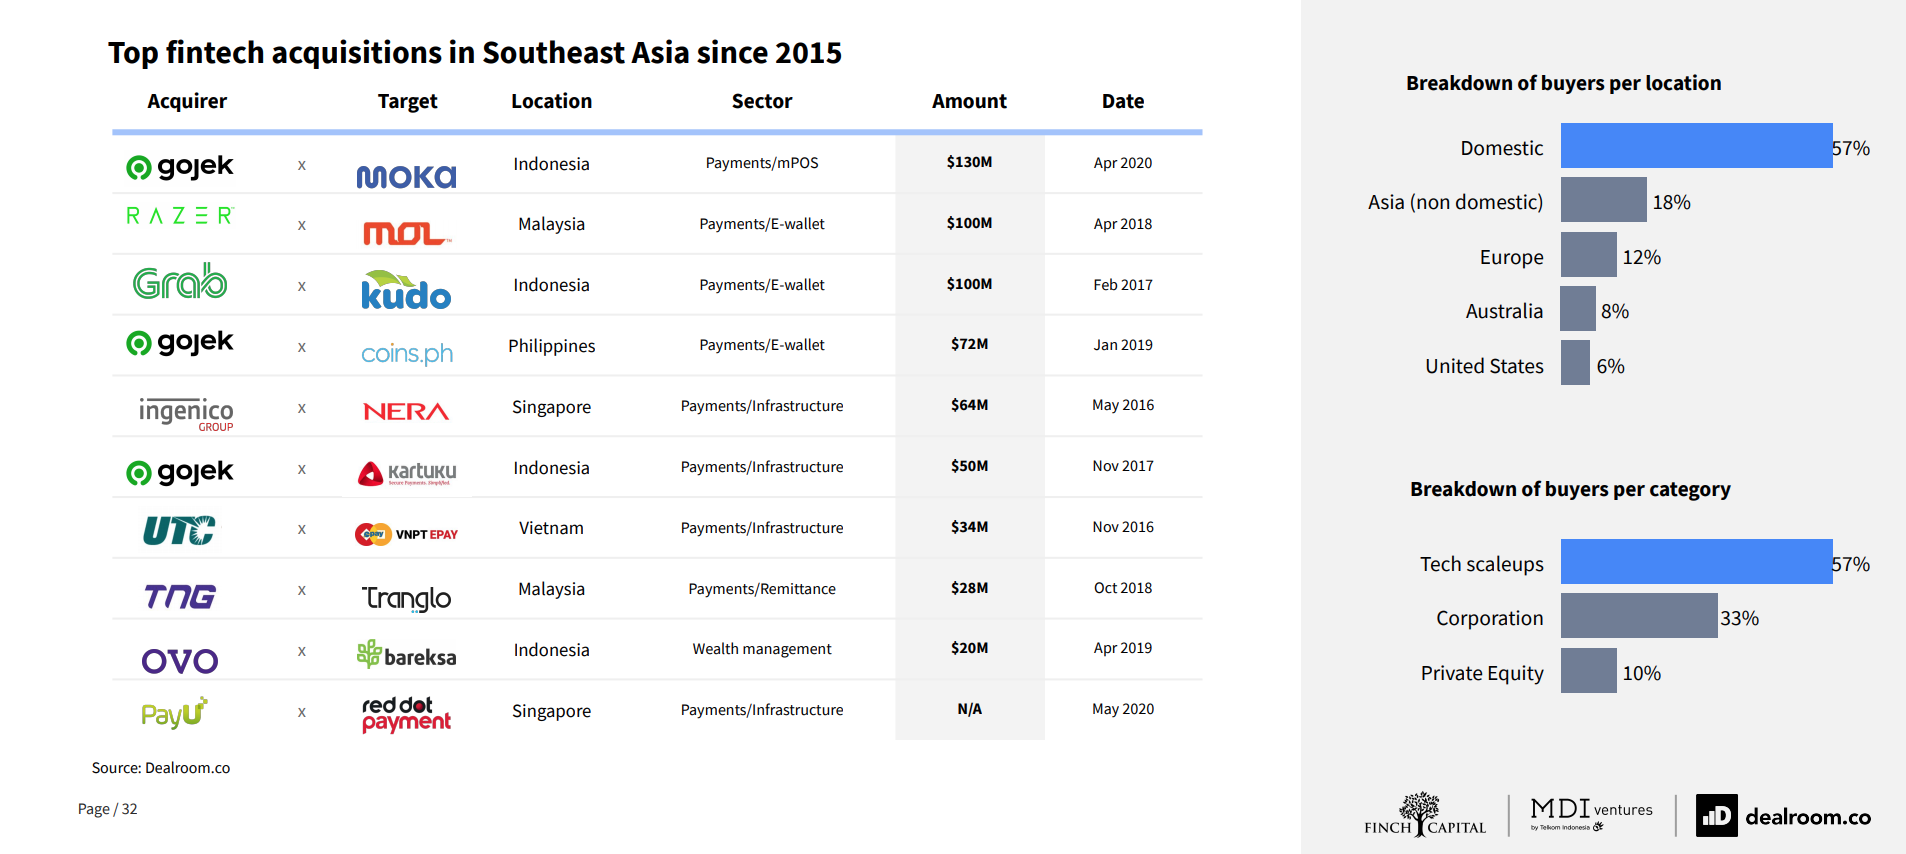 Fintech acquisitions in Southeast Asia since 2015, Source- The Future of Fintech in Southeast Asia, Dealroom, Finch Capital and MDI Ventures, Sept 20